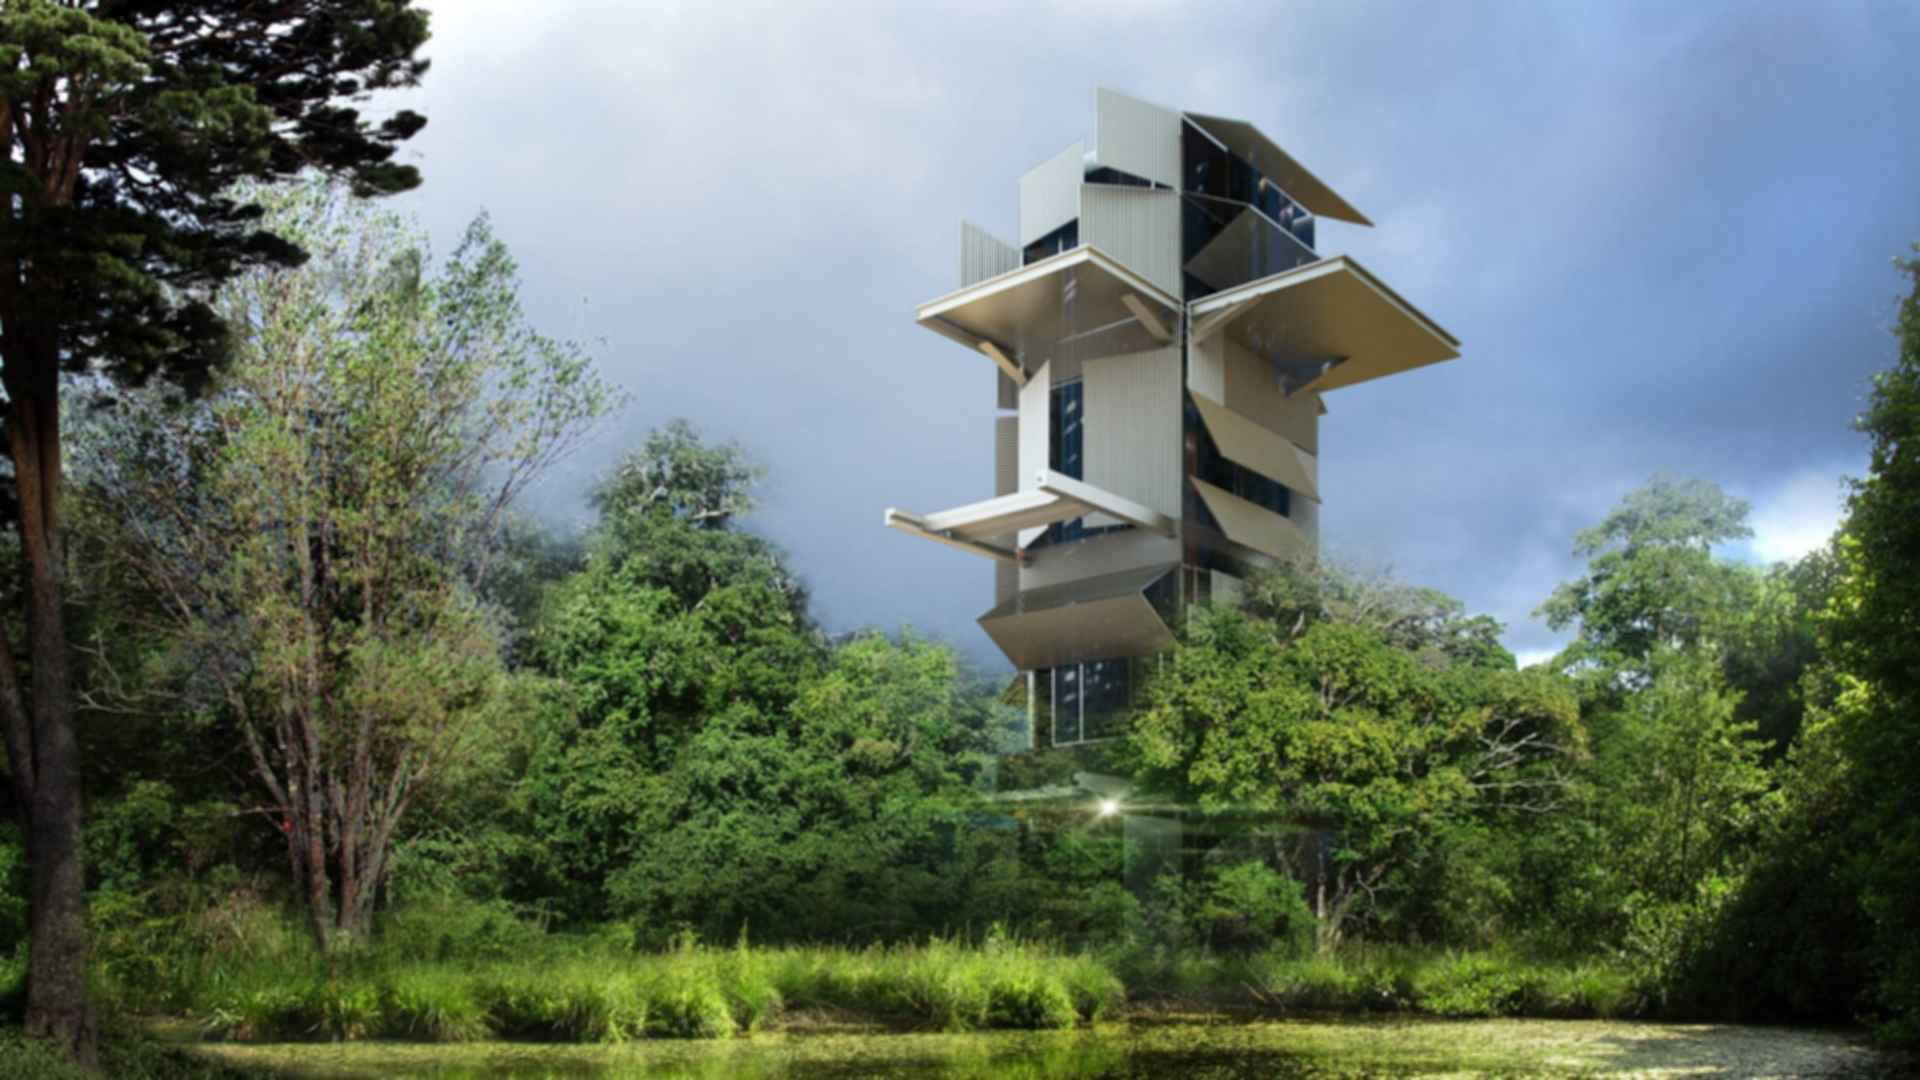 The Artists' Gardens - Artist Tower Concept